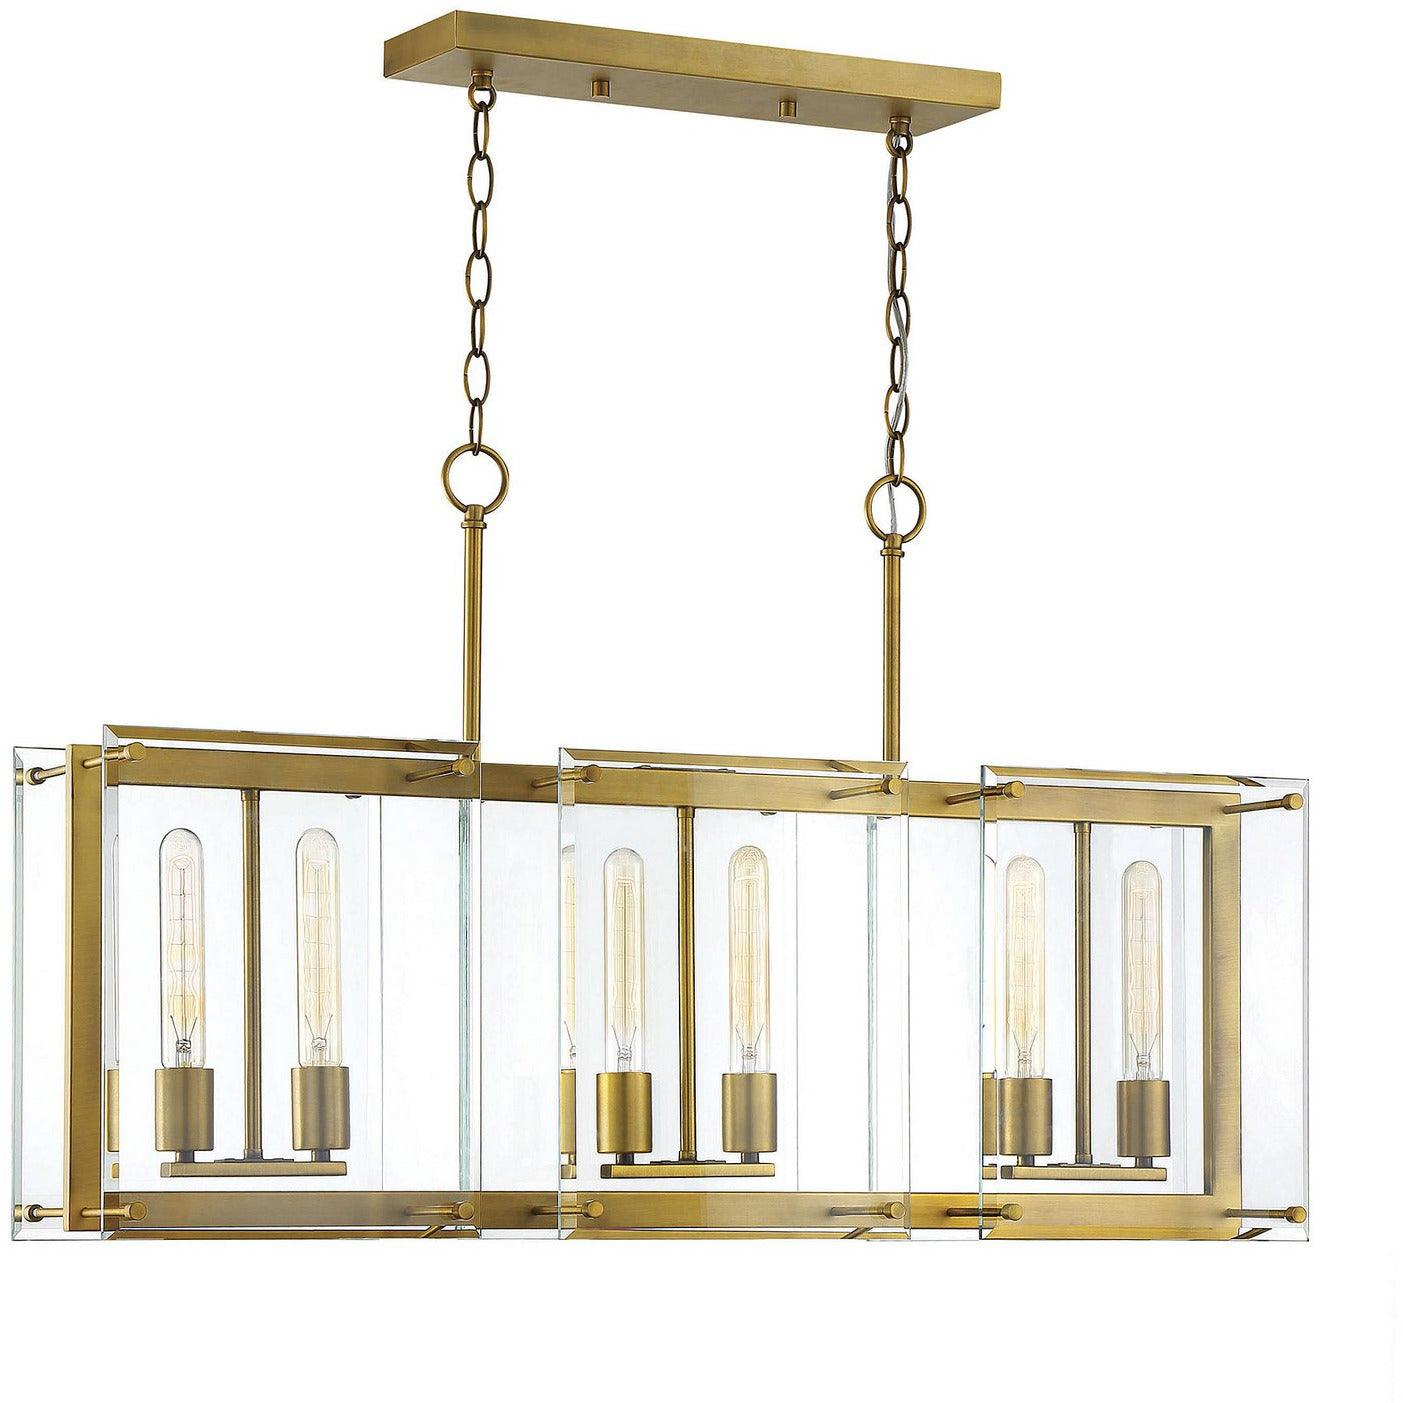 Savoy House - 1-0602-6-322 - Six Light Linear Chandelier - Prescott - Warm Brass